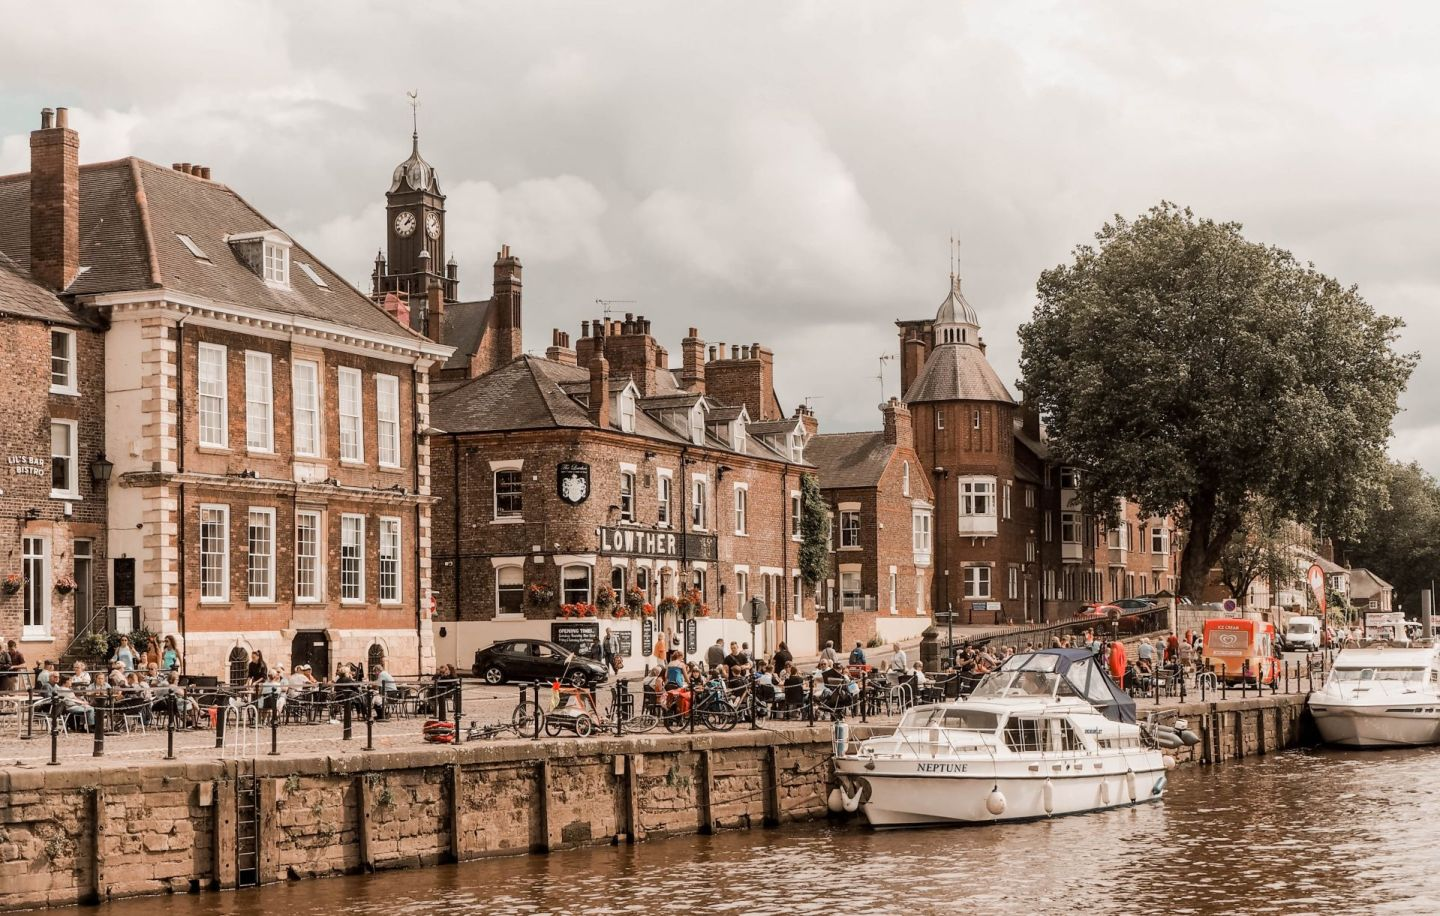 Visit York, Yorkshire, York CityPass, Kate Winney, Little Miss Winney, UK Holiday, British History, Shambles, City Cruise